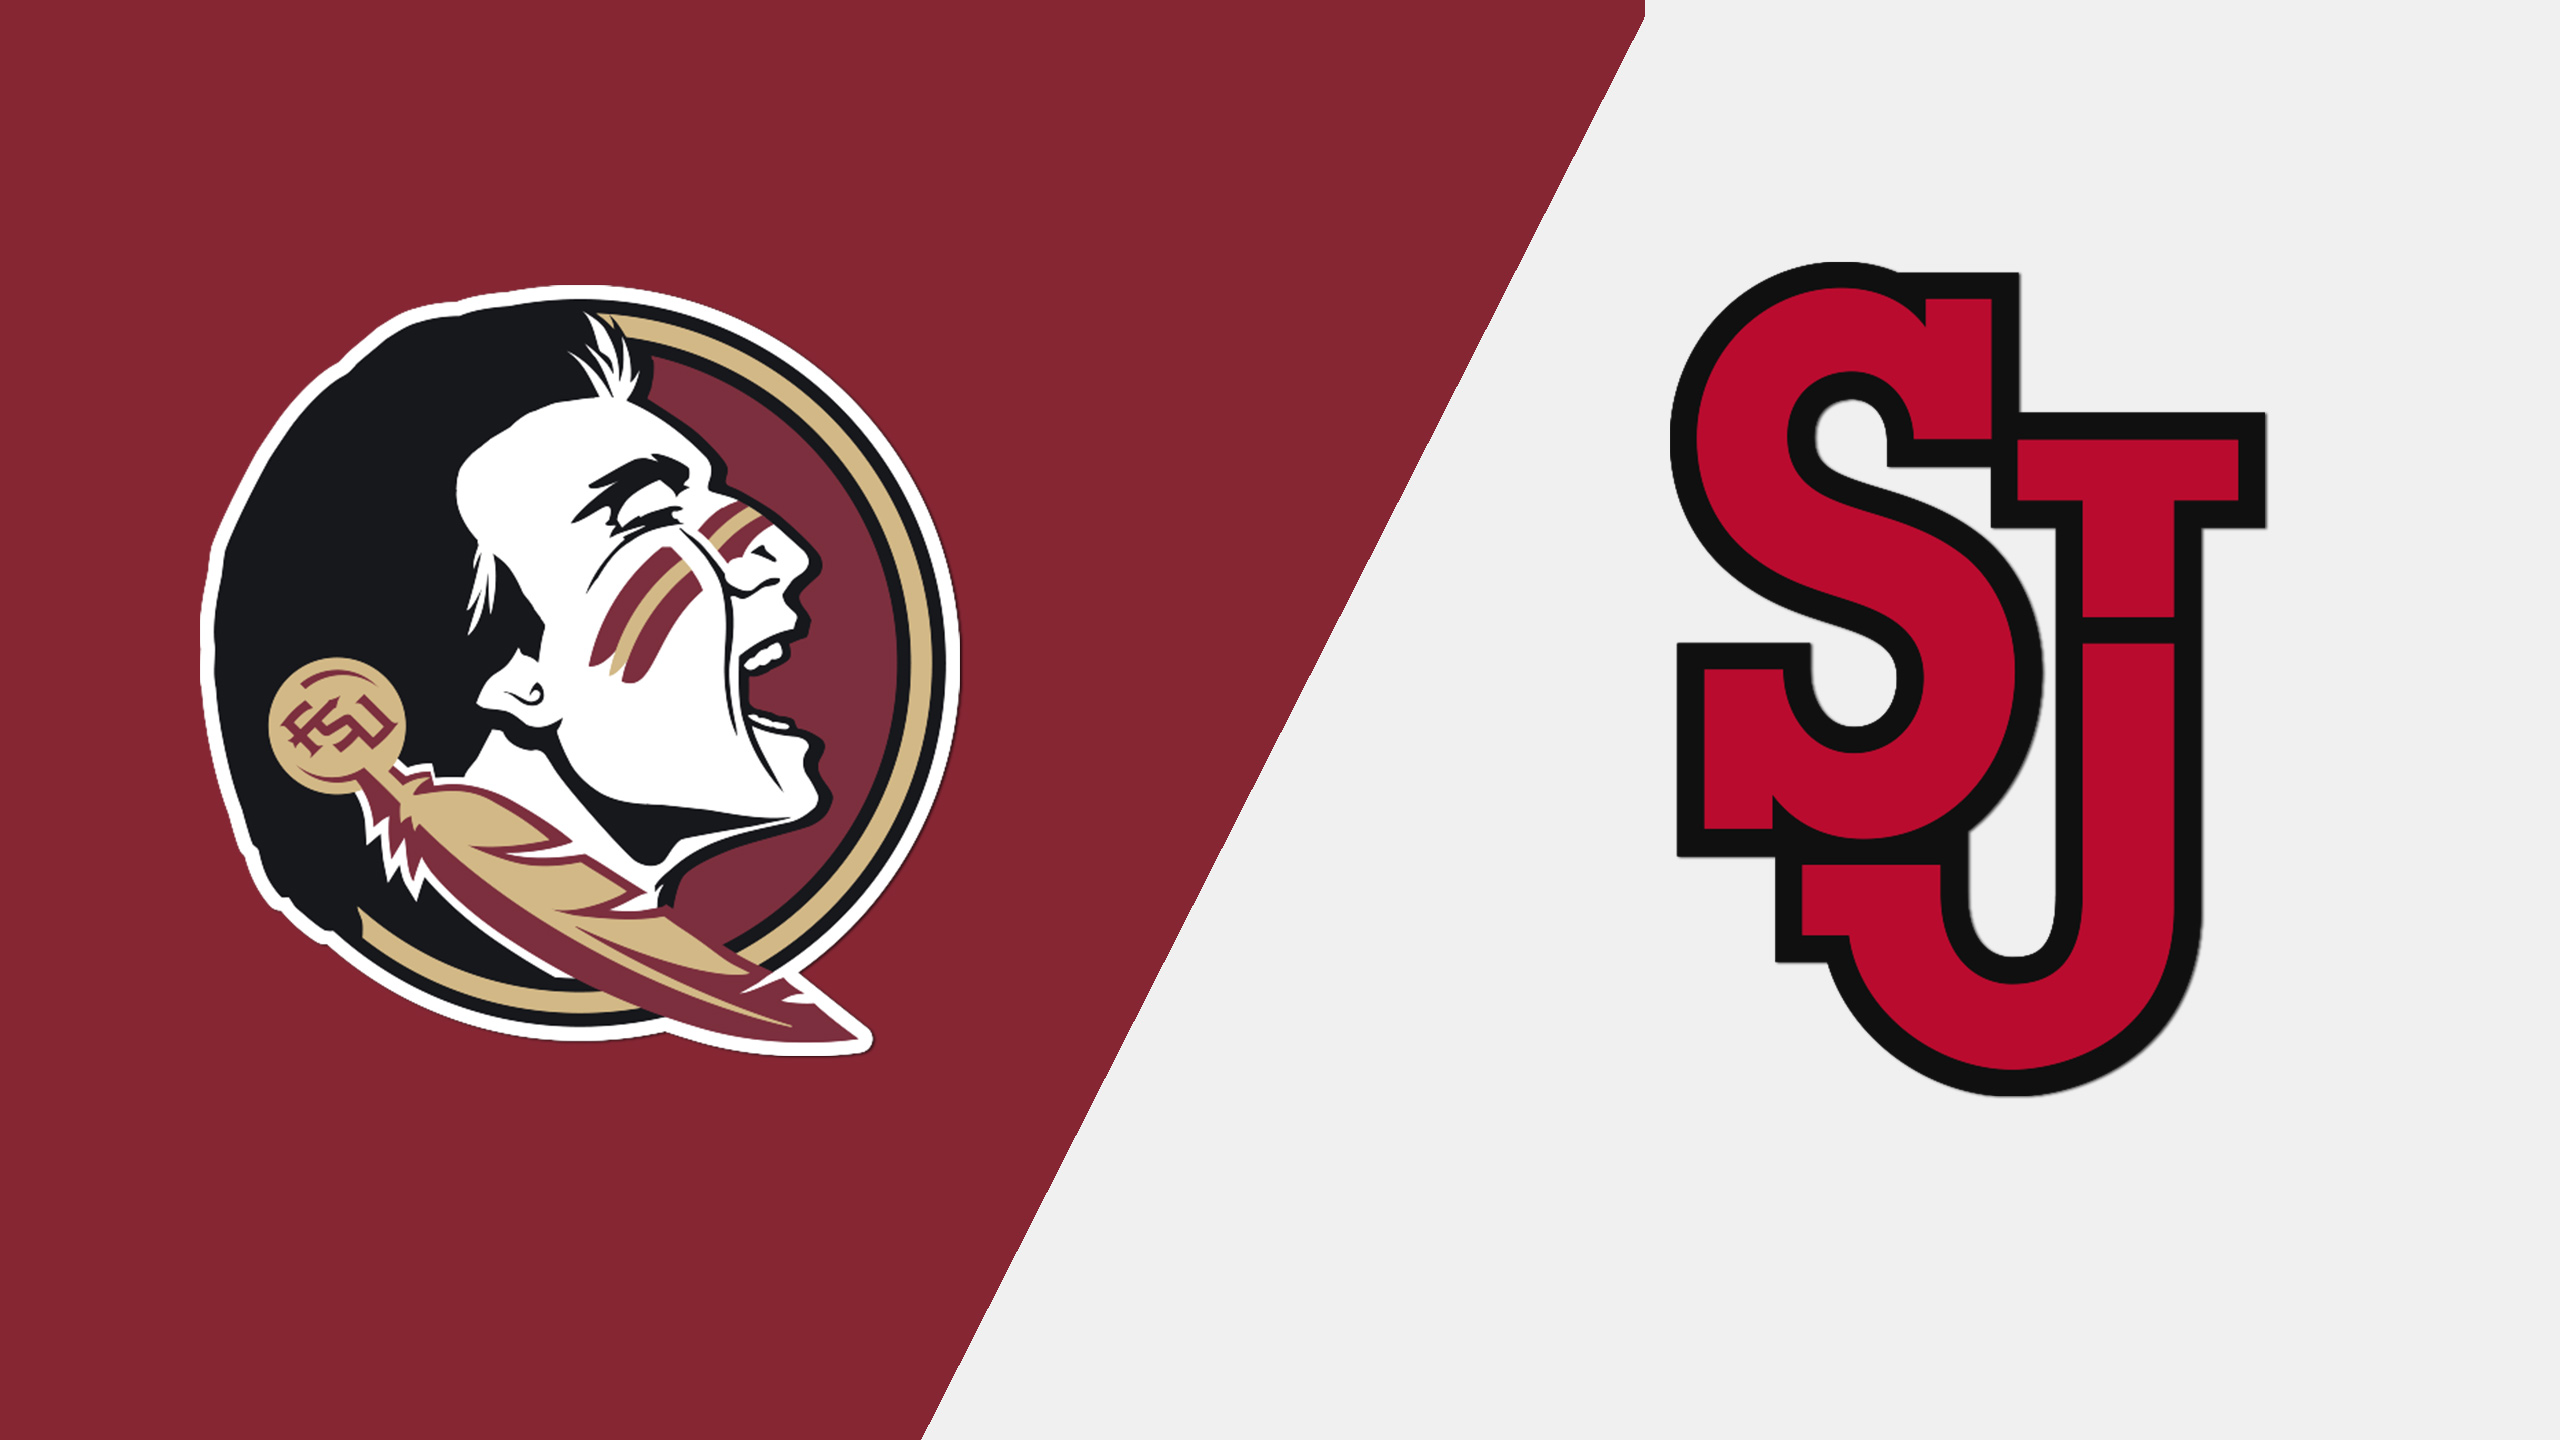 Florida State vs. St. John's (W Basketball)